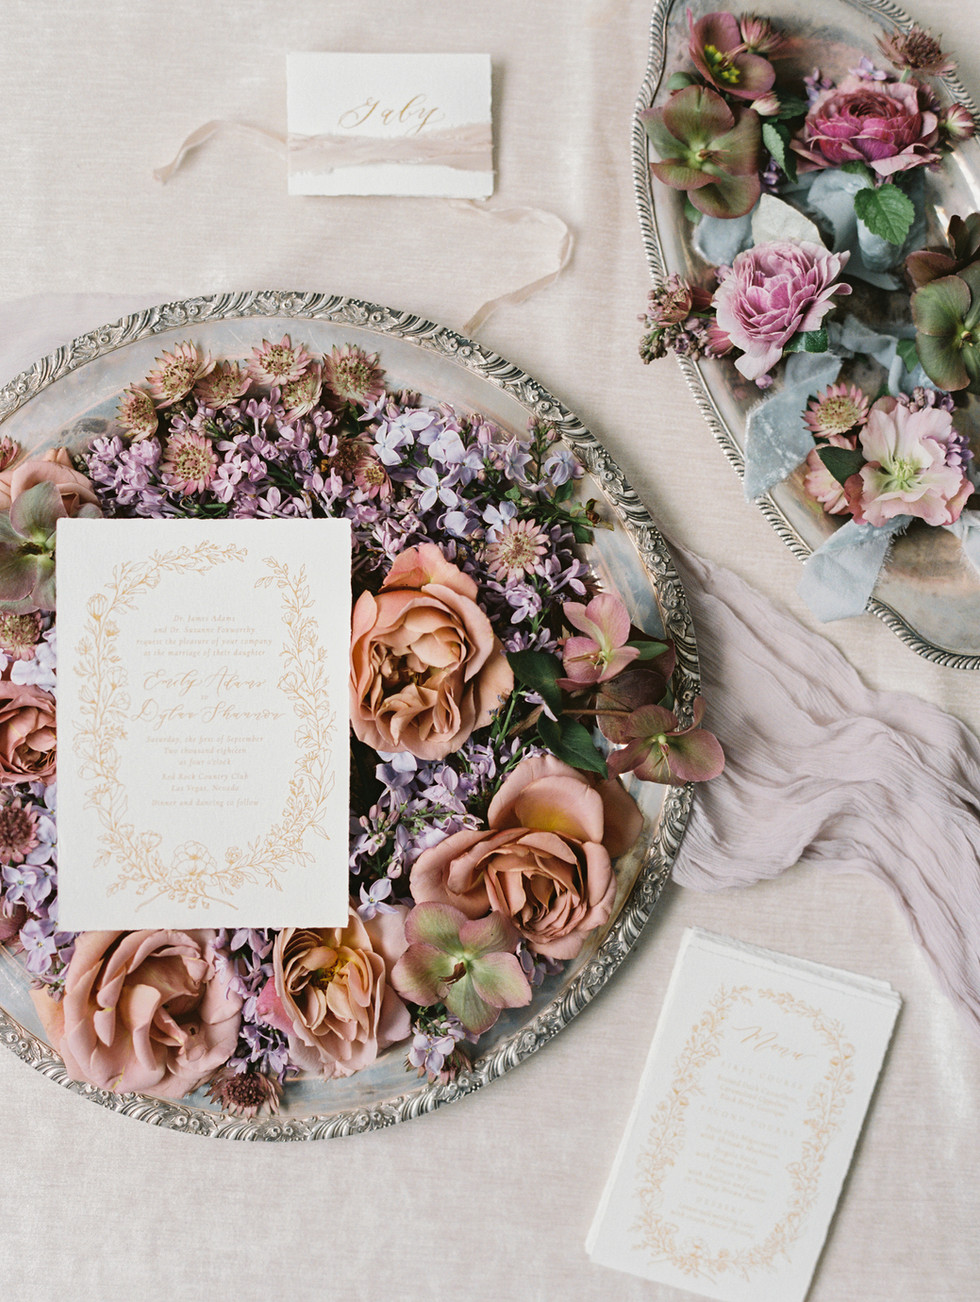 Muted shades of lilac and taupe styling blooms. Photo: Gaby Jeter